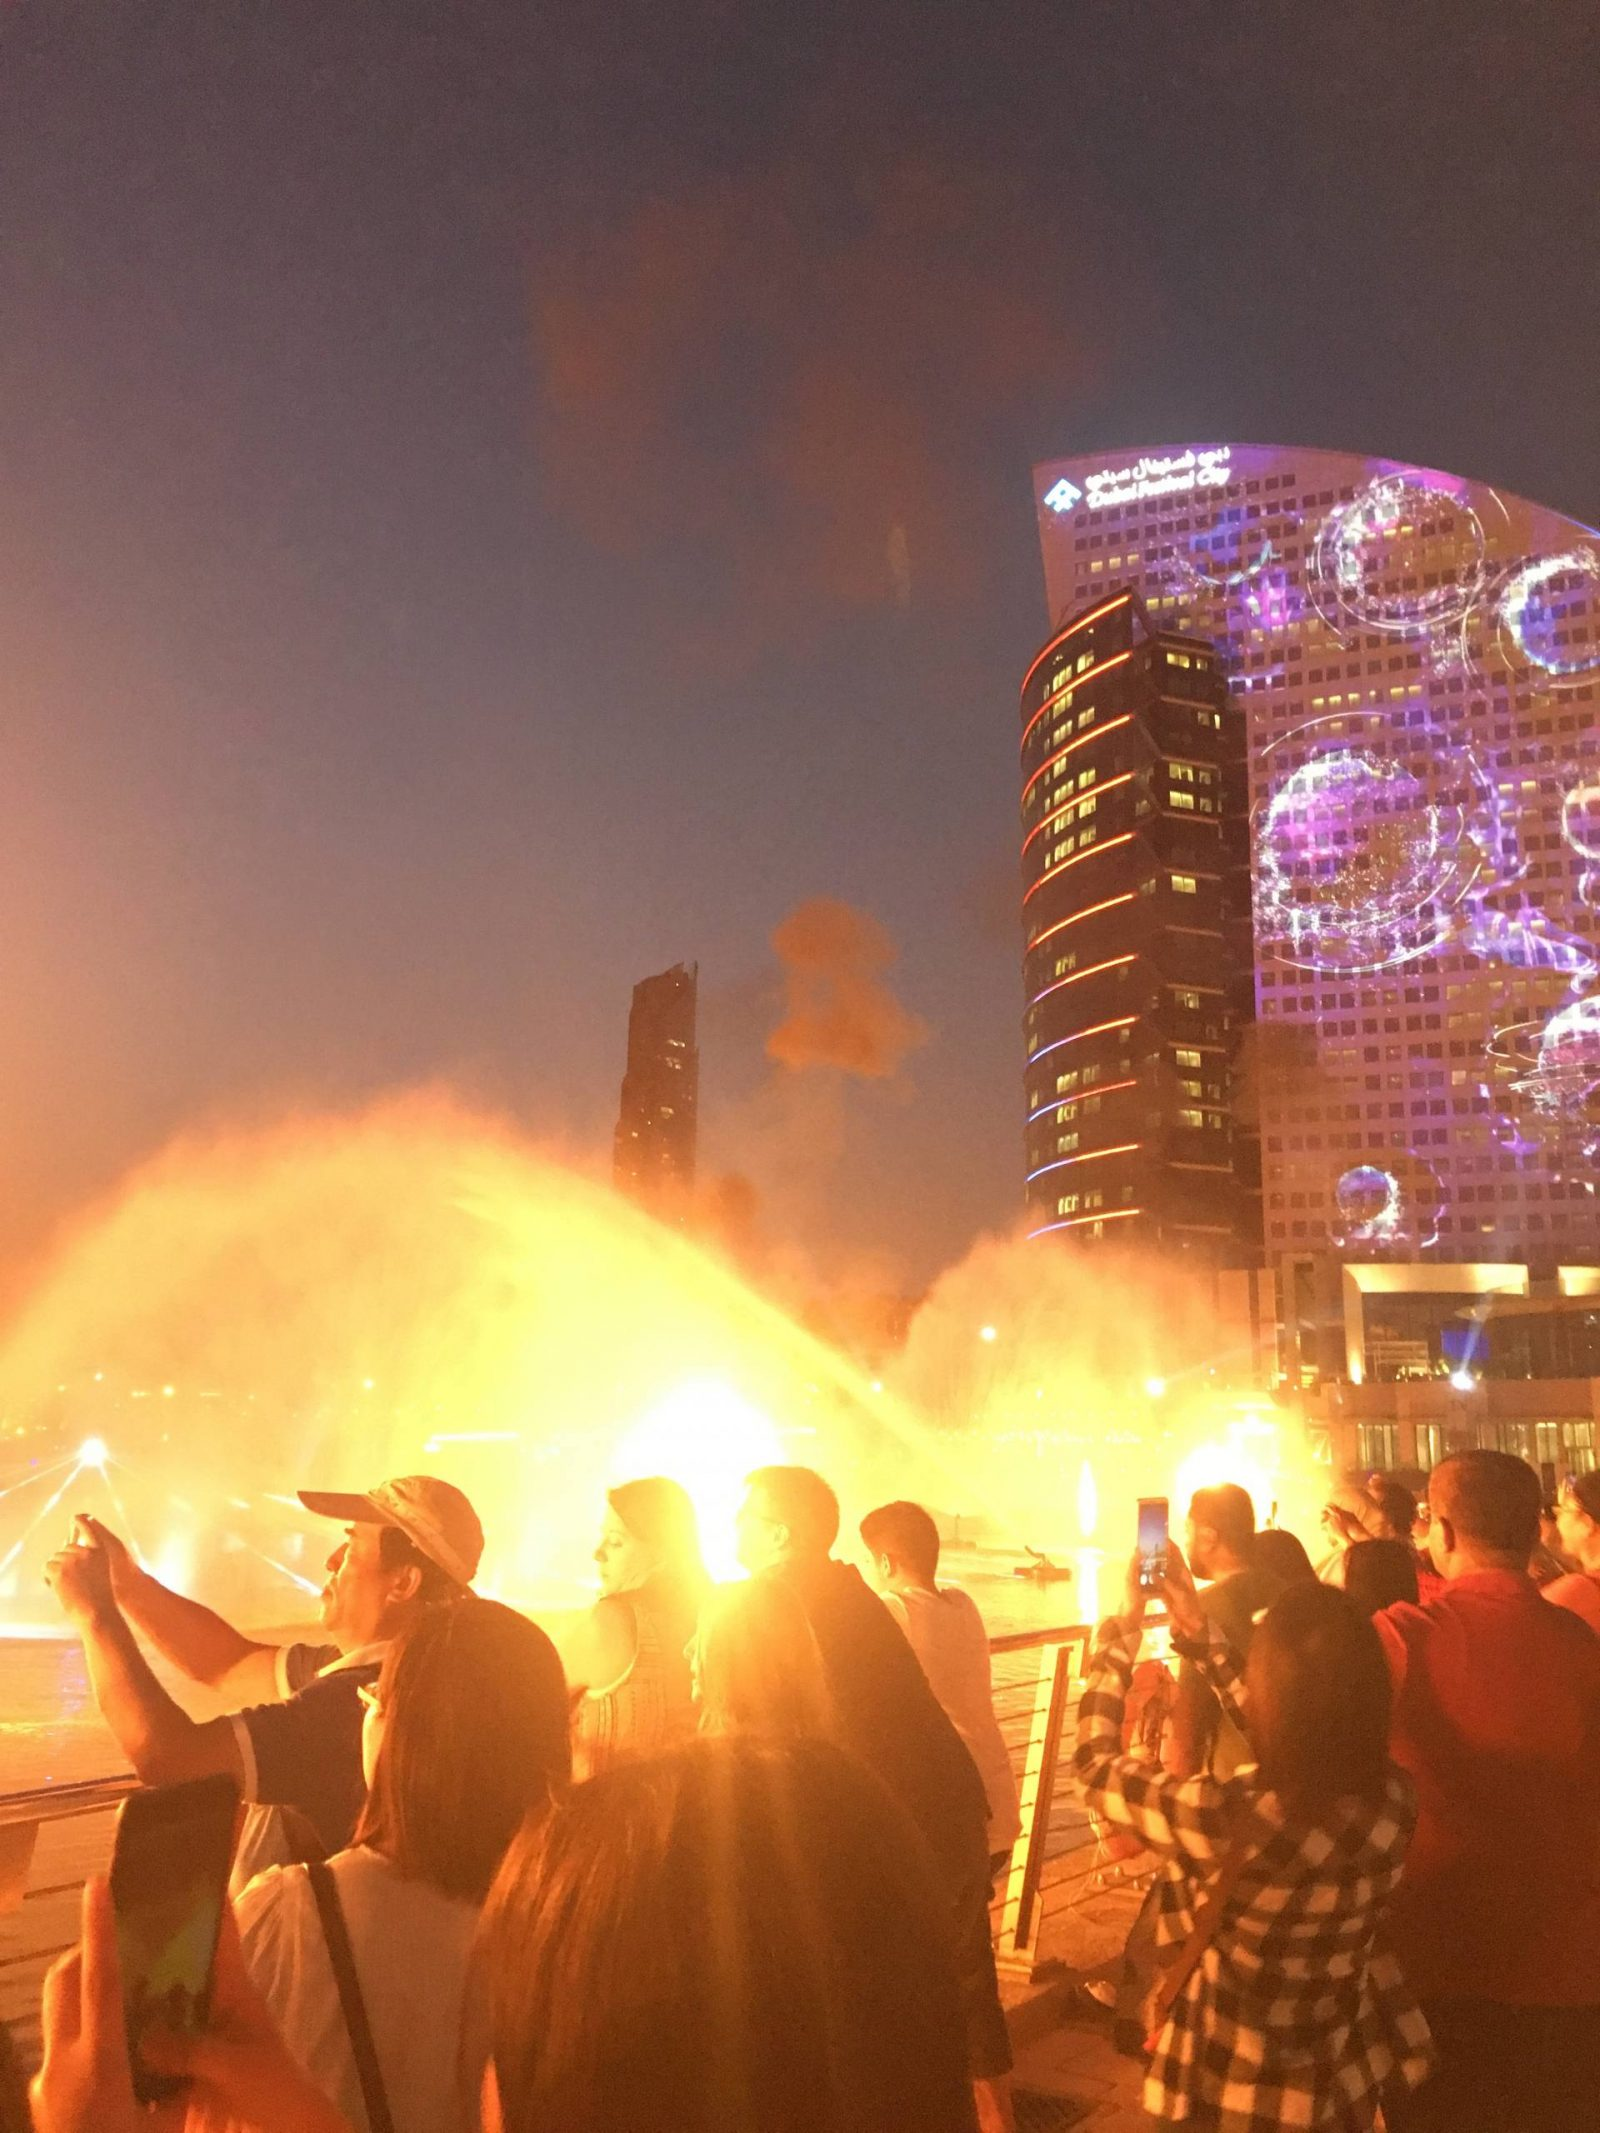 A crowd watches flaming fireworks and a light projection onto a building at IMAGINE, Dubai Festival City Mall